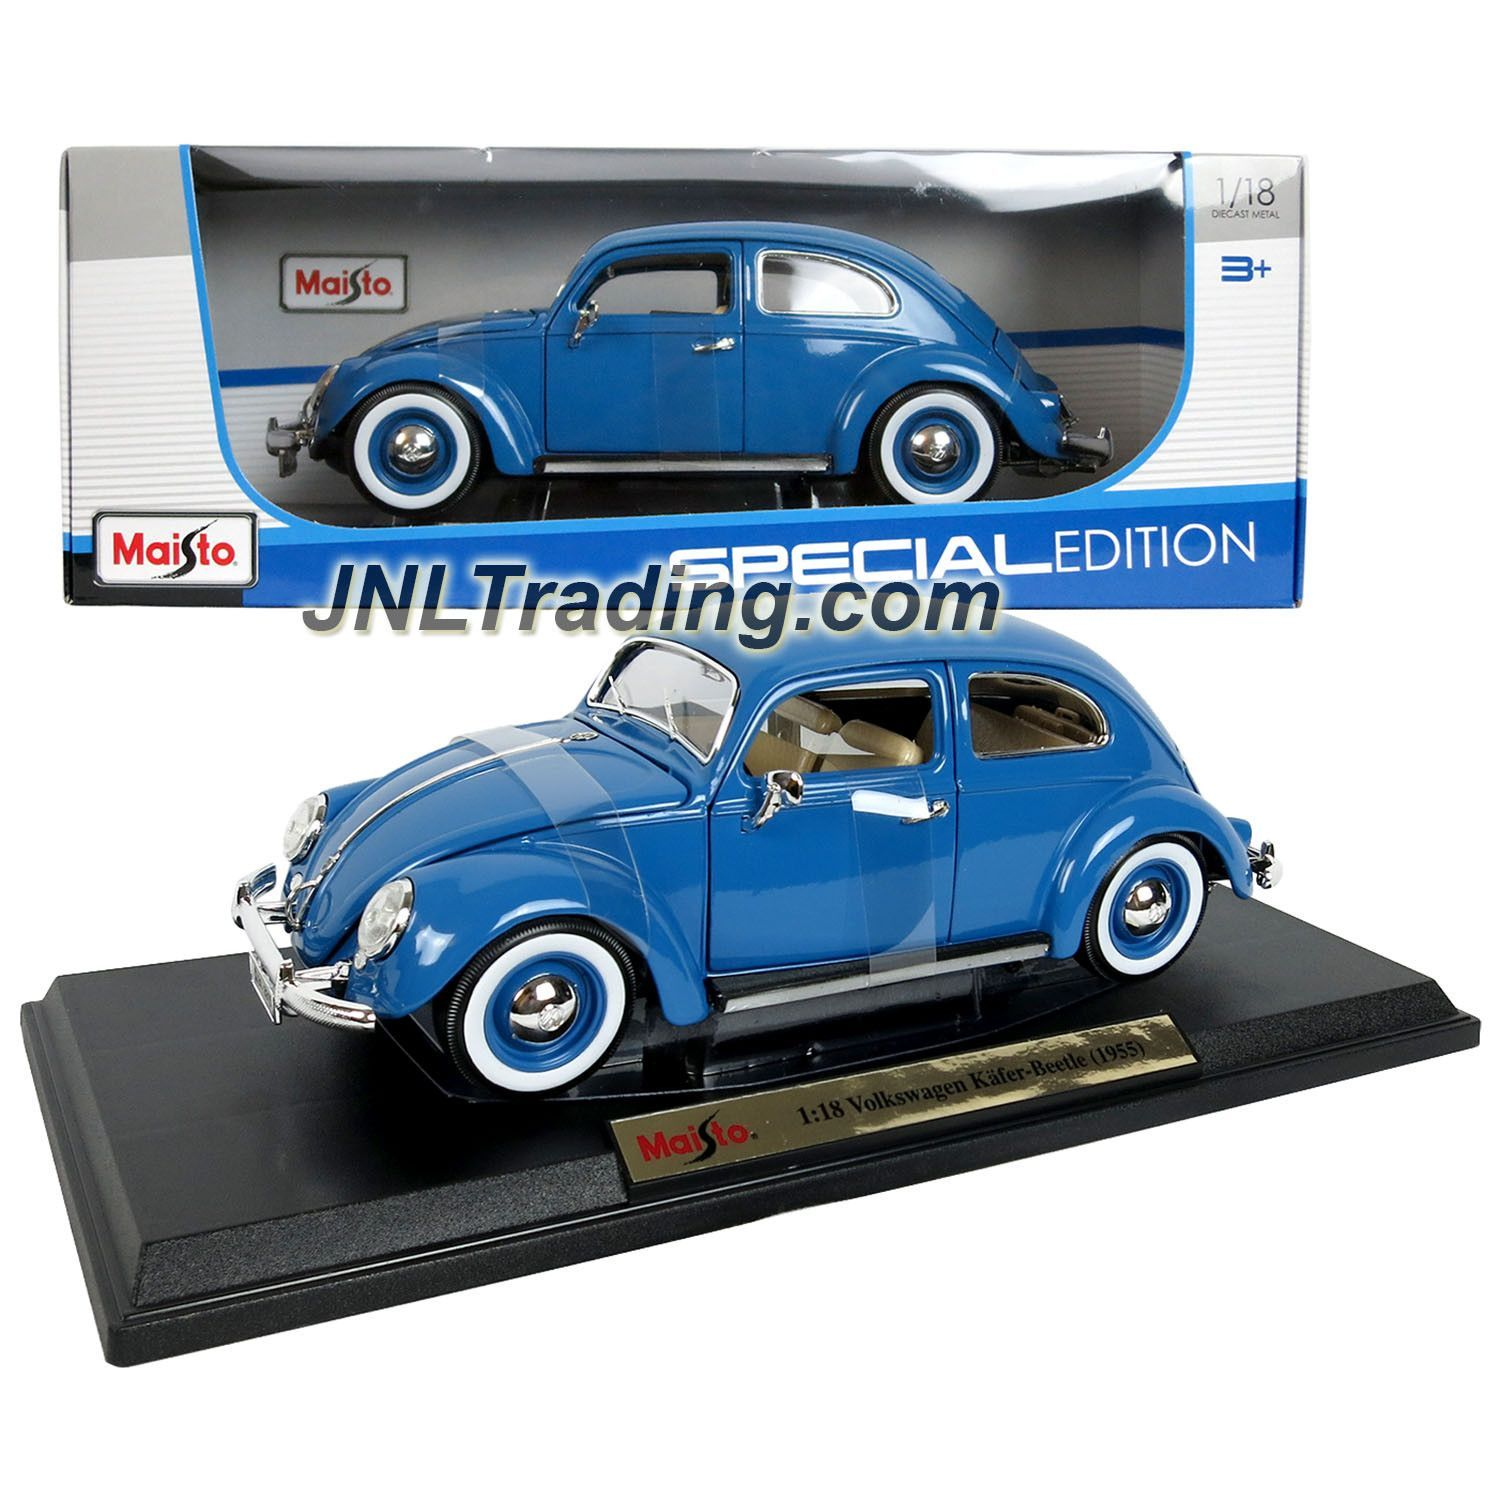 Maisto special edition series 1 18 scale die cast car set blue 1955 volkswagen